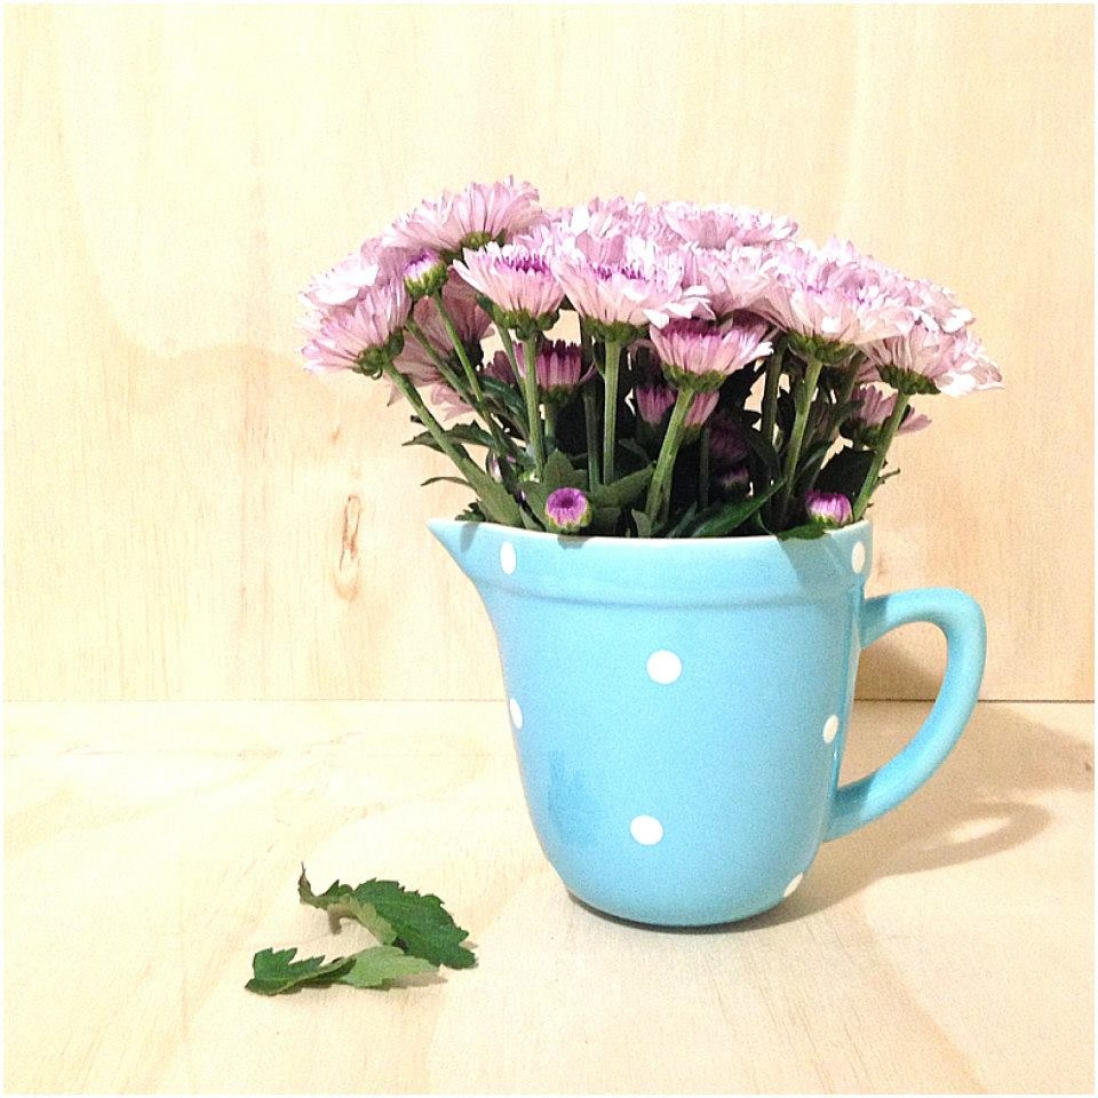 Image of a blue jug with flowers